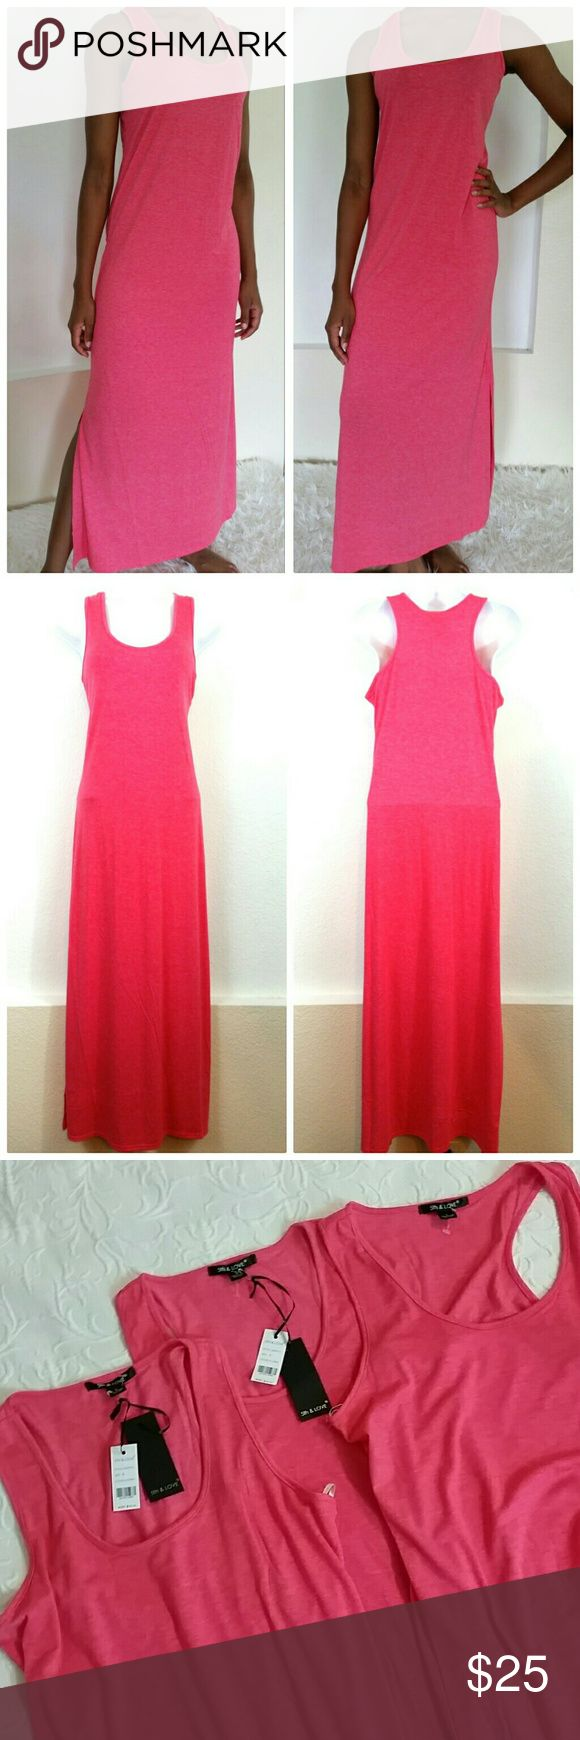 Coral Maxi Tank Dress 5th Love coral pink tank maxi dress. 2 size large one size small. All new. one small and one large with tags, one large without tags DD62717399 5th & Love Dresses Maxi